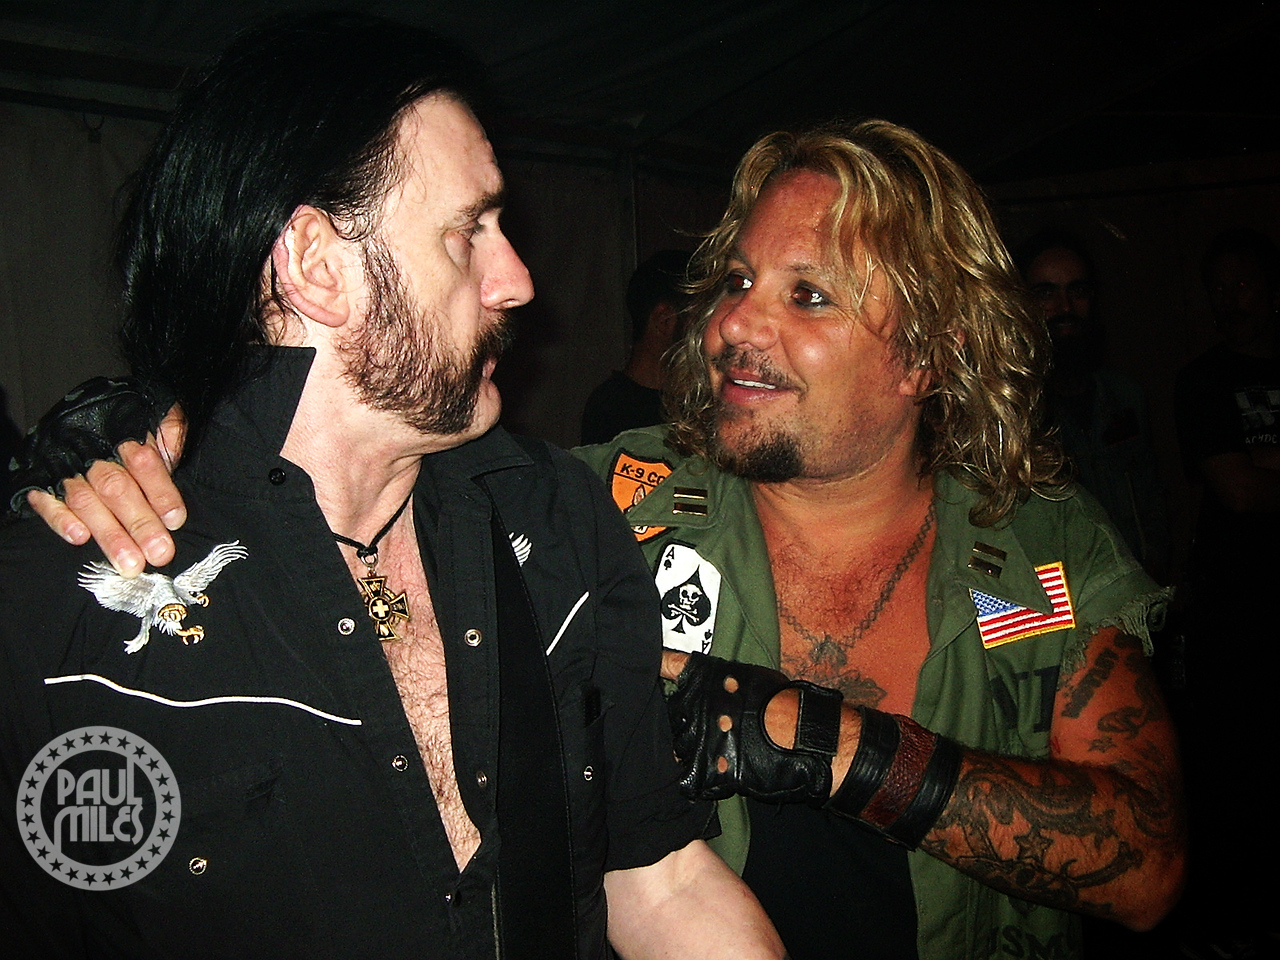 Vince Neil side of stage stepping Motorhead's Lemmy through the verse lyrics to Motley Crue's version of Anarchy In The USA, before they sing this encore song at Blackjack Festival on 10 December 2005 to complete their Australian Tour.